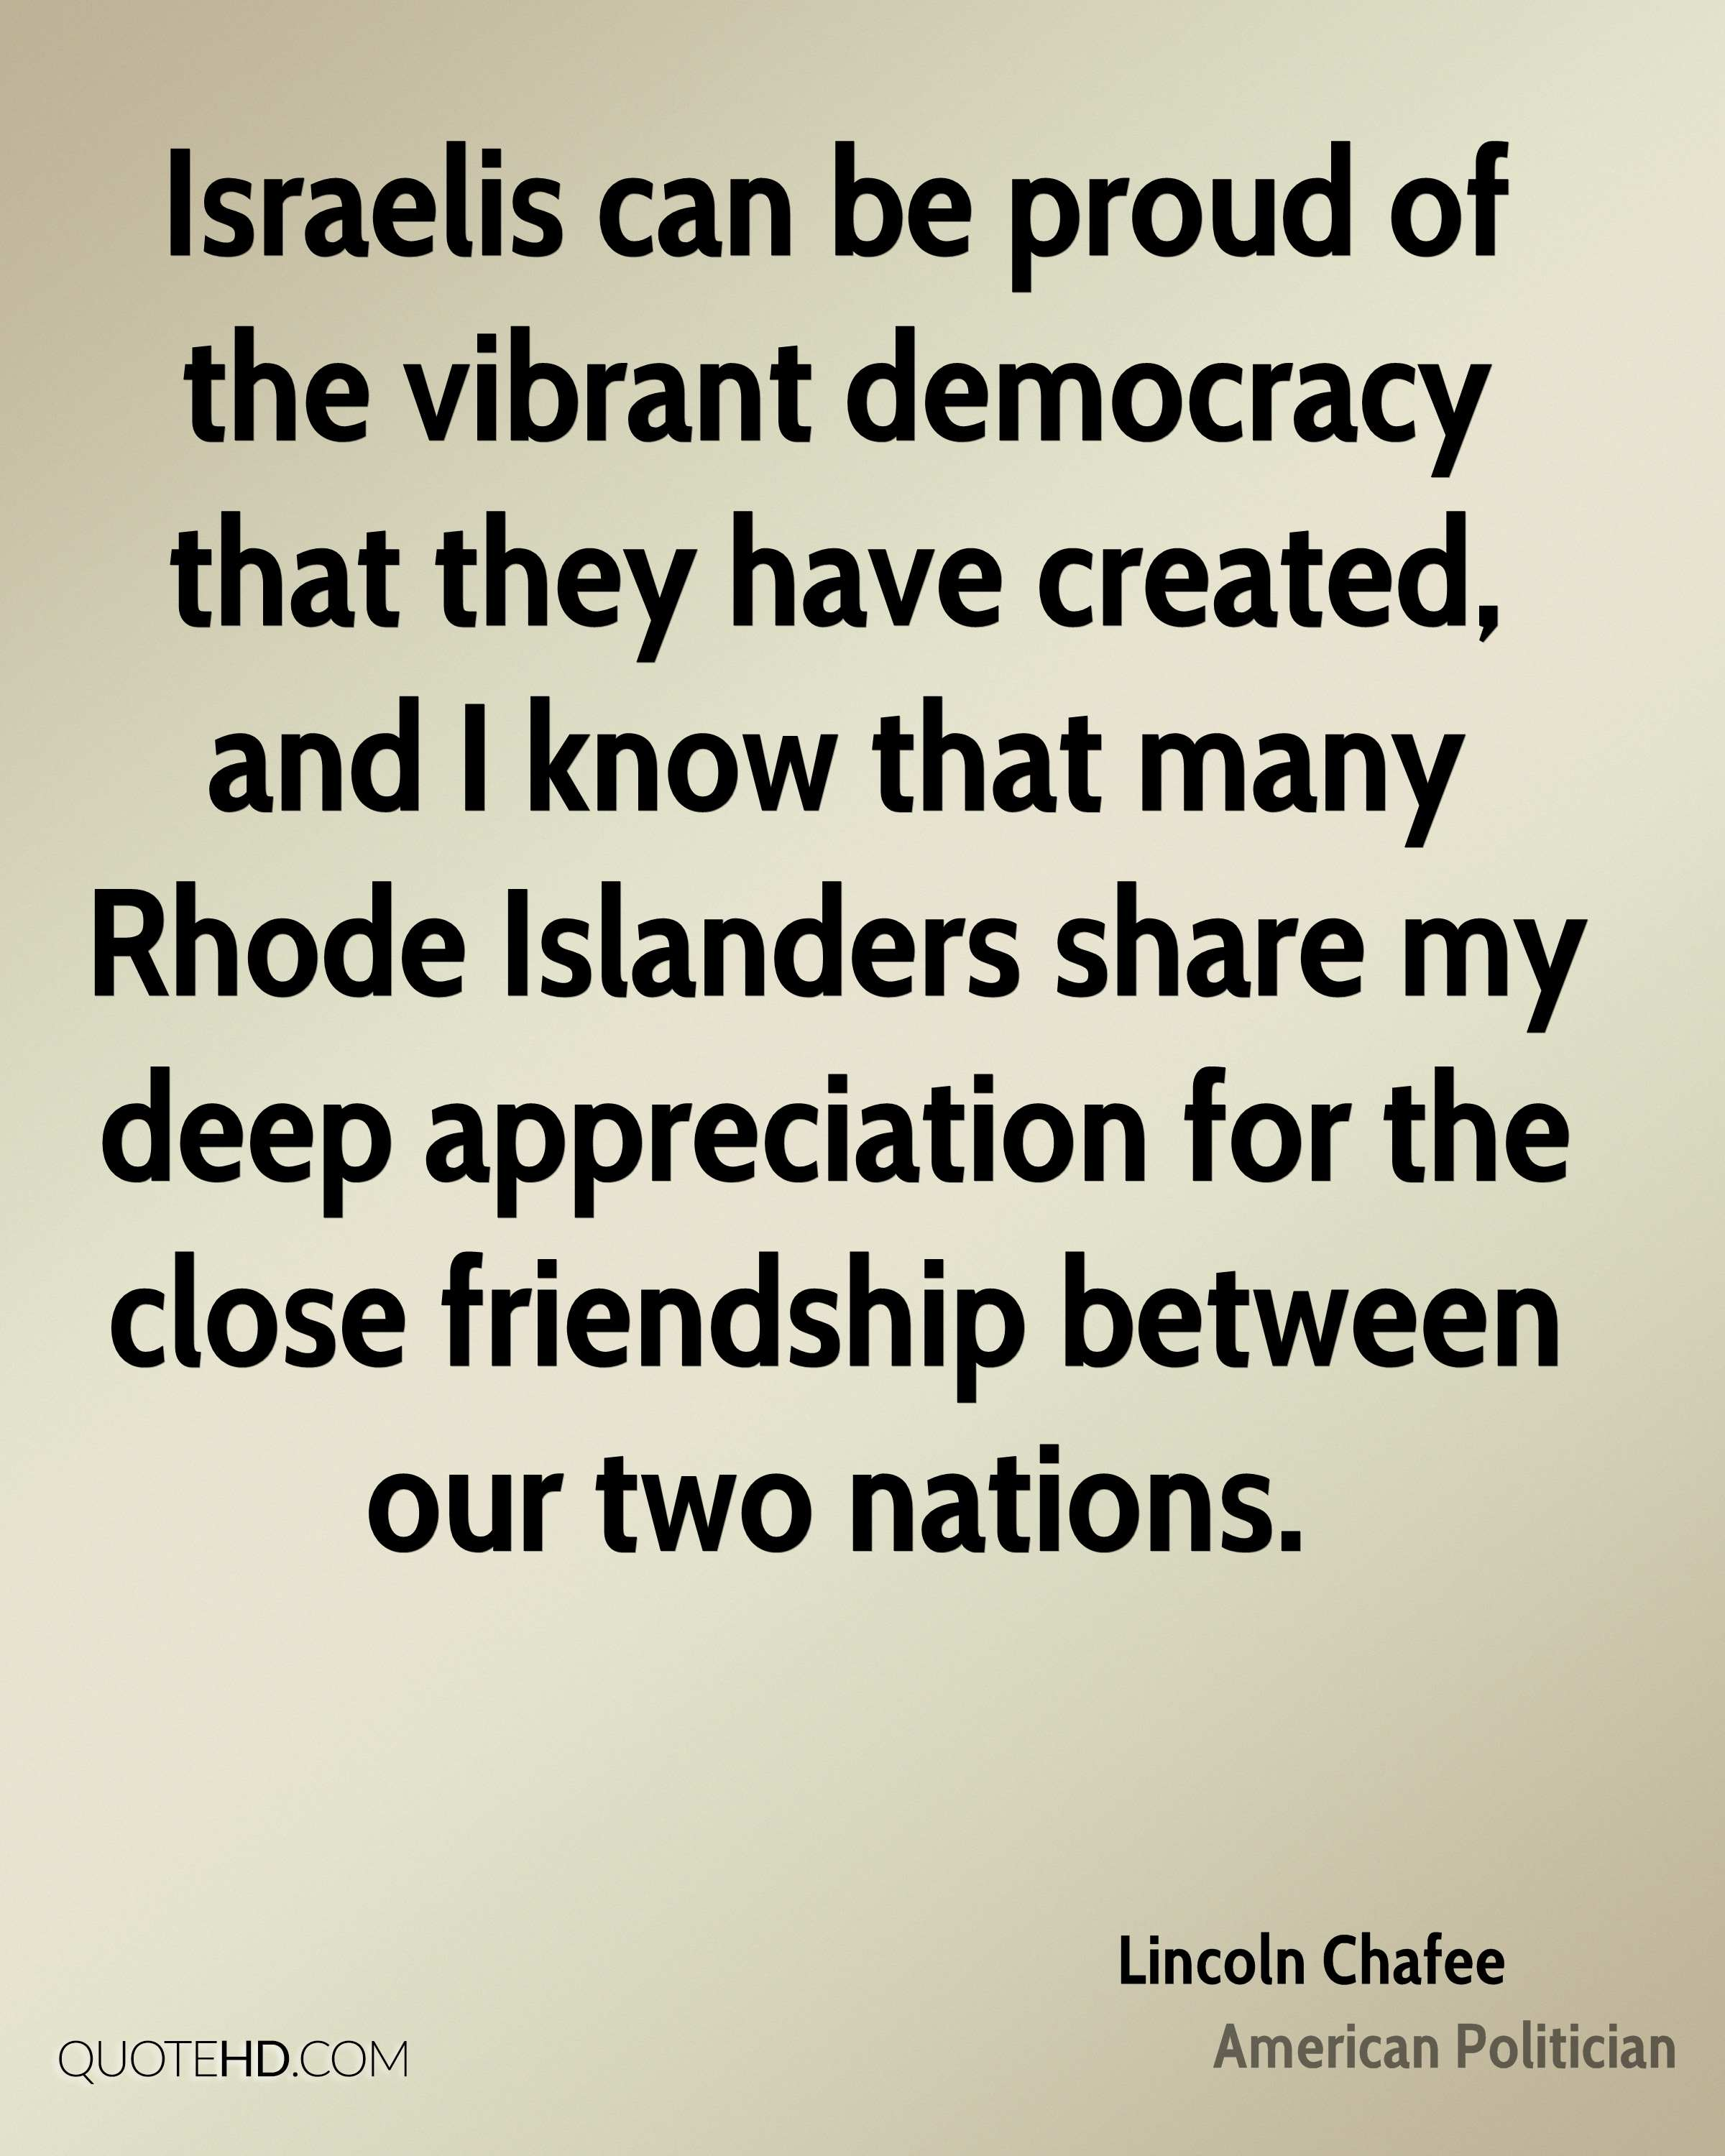 Israelis can be proud of the vibrant democracy that they have created, and I know that many Rhode Islanders share my deep appreciation for the close friendship between our two nations.